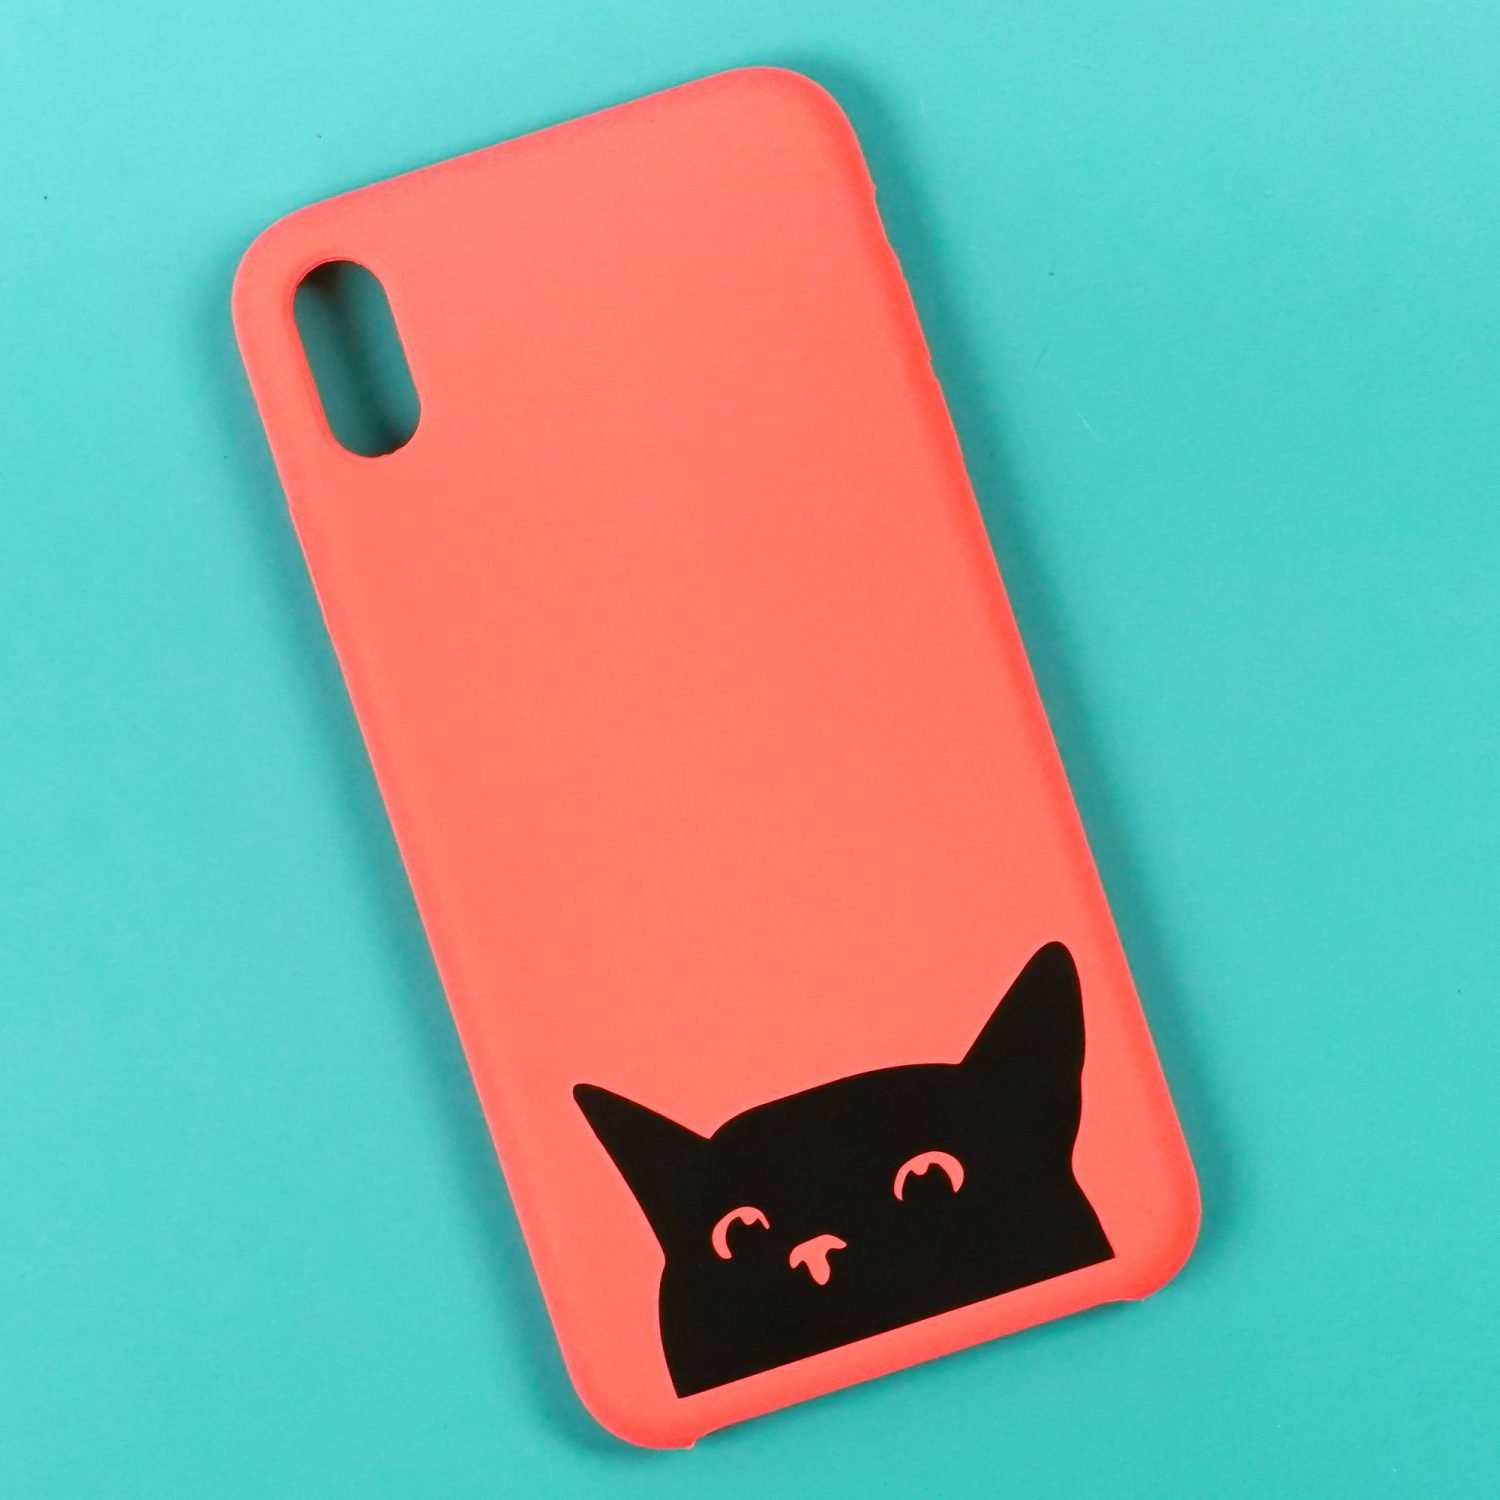 Cat phone case made with a Cricut on a teal background